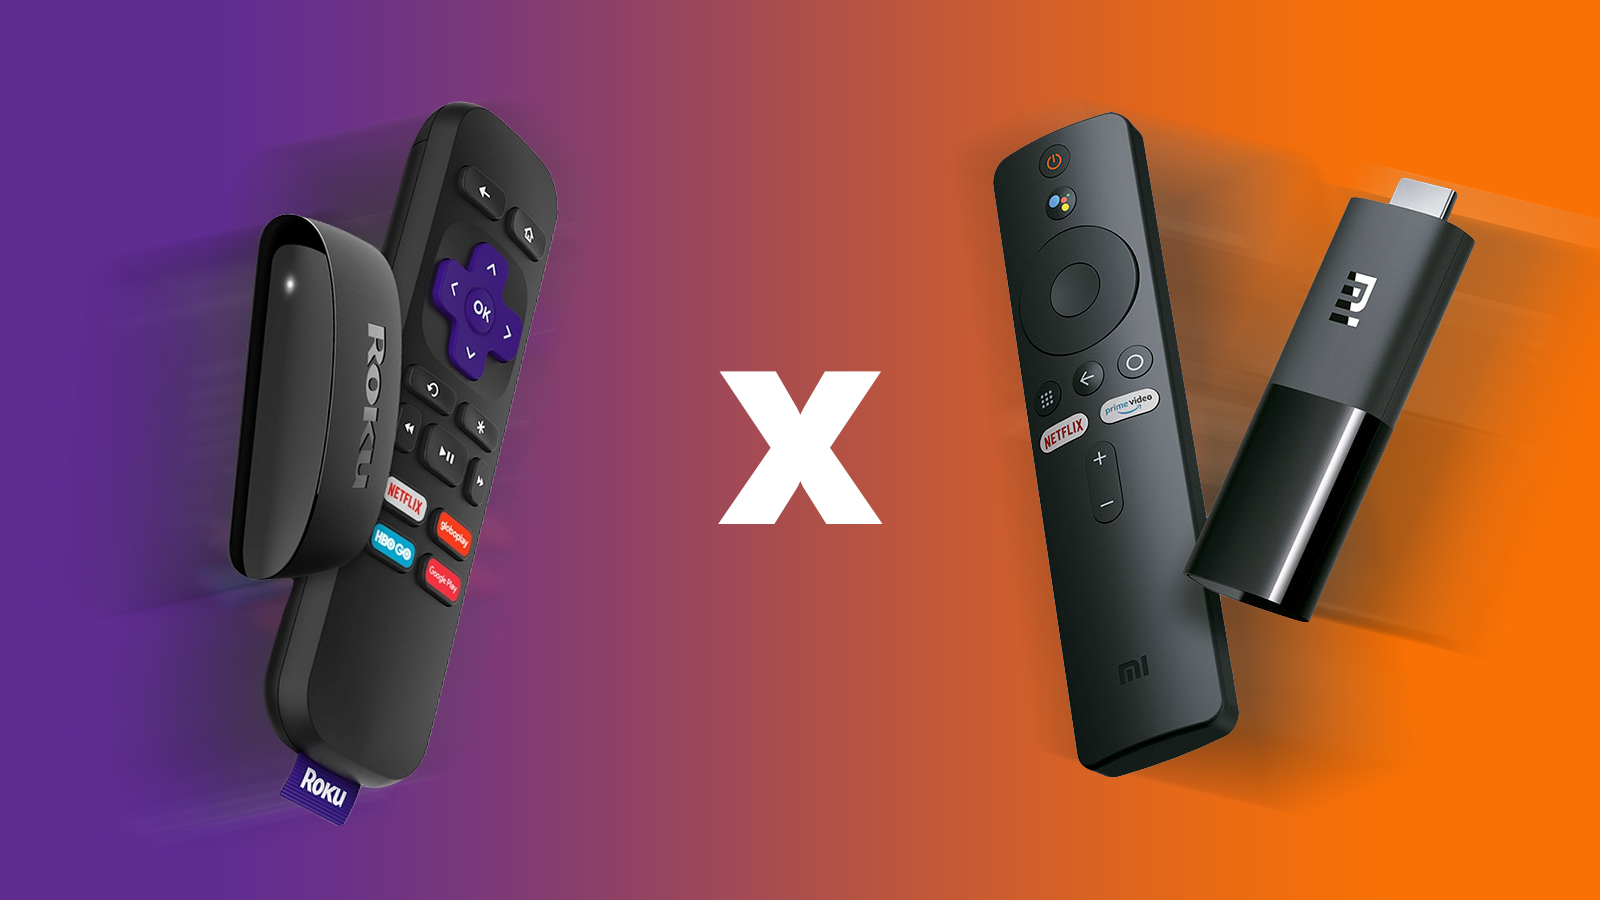 Review: roku express e mi tv stick trazem o melhor do streaming para sua tv. Testamos e comparamos os sistemas mi tv stick e roku express, para que (sem gastar muito! ) você possa ter o melhor do streaming na sua tv